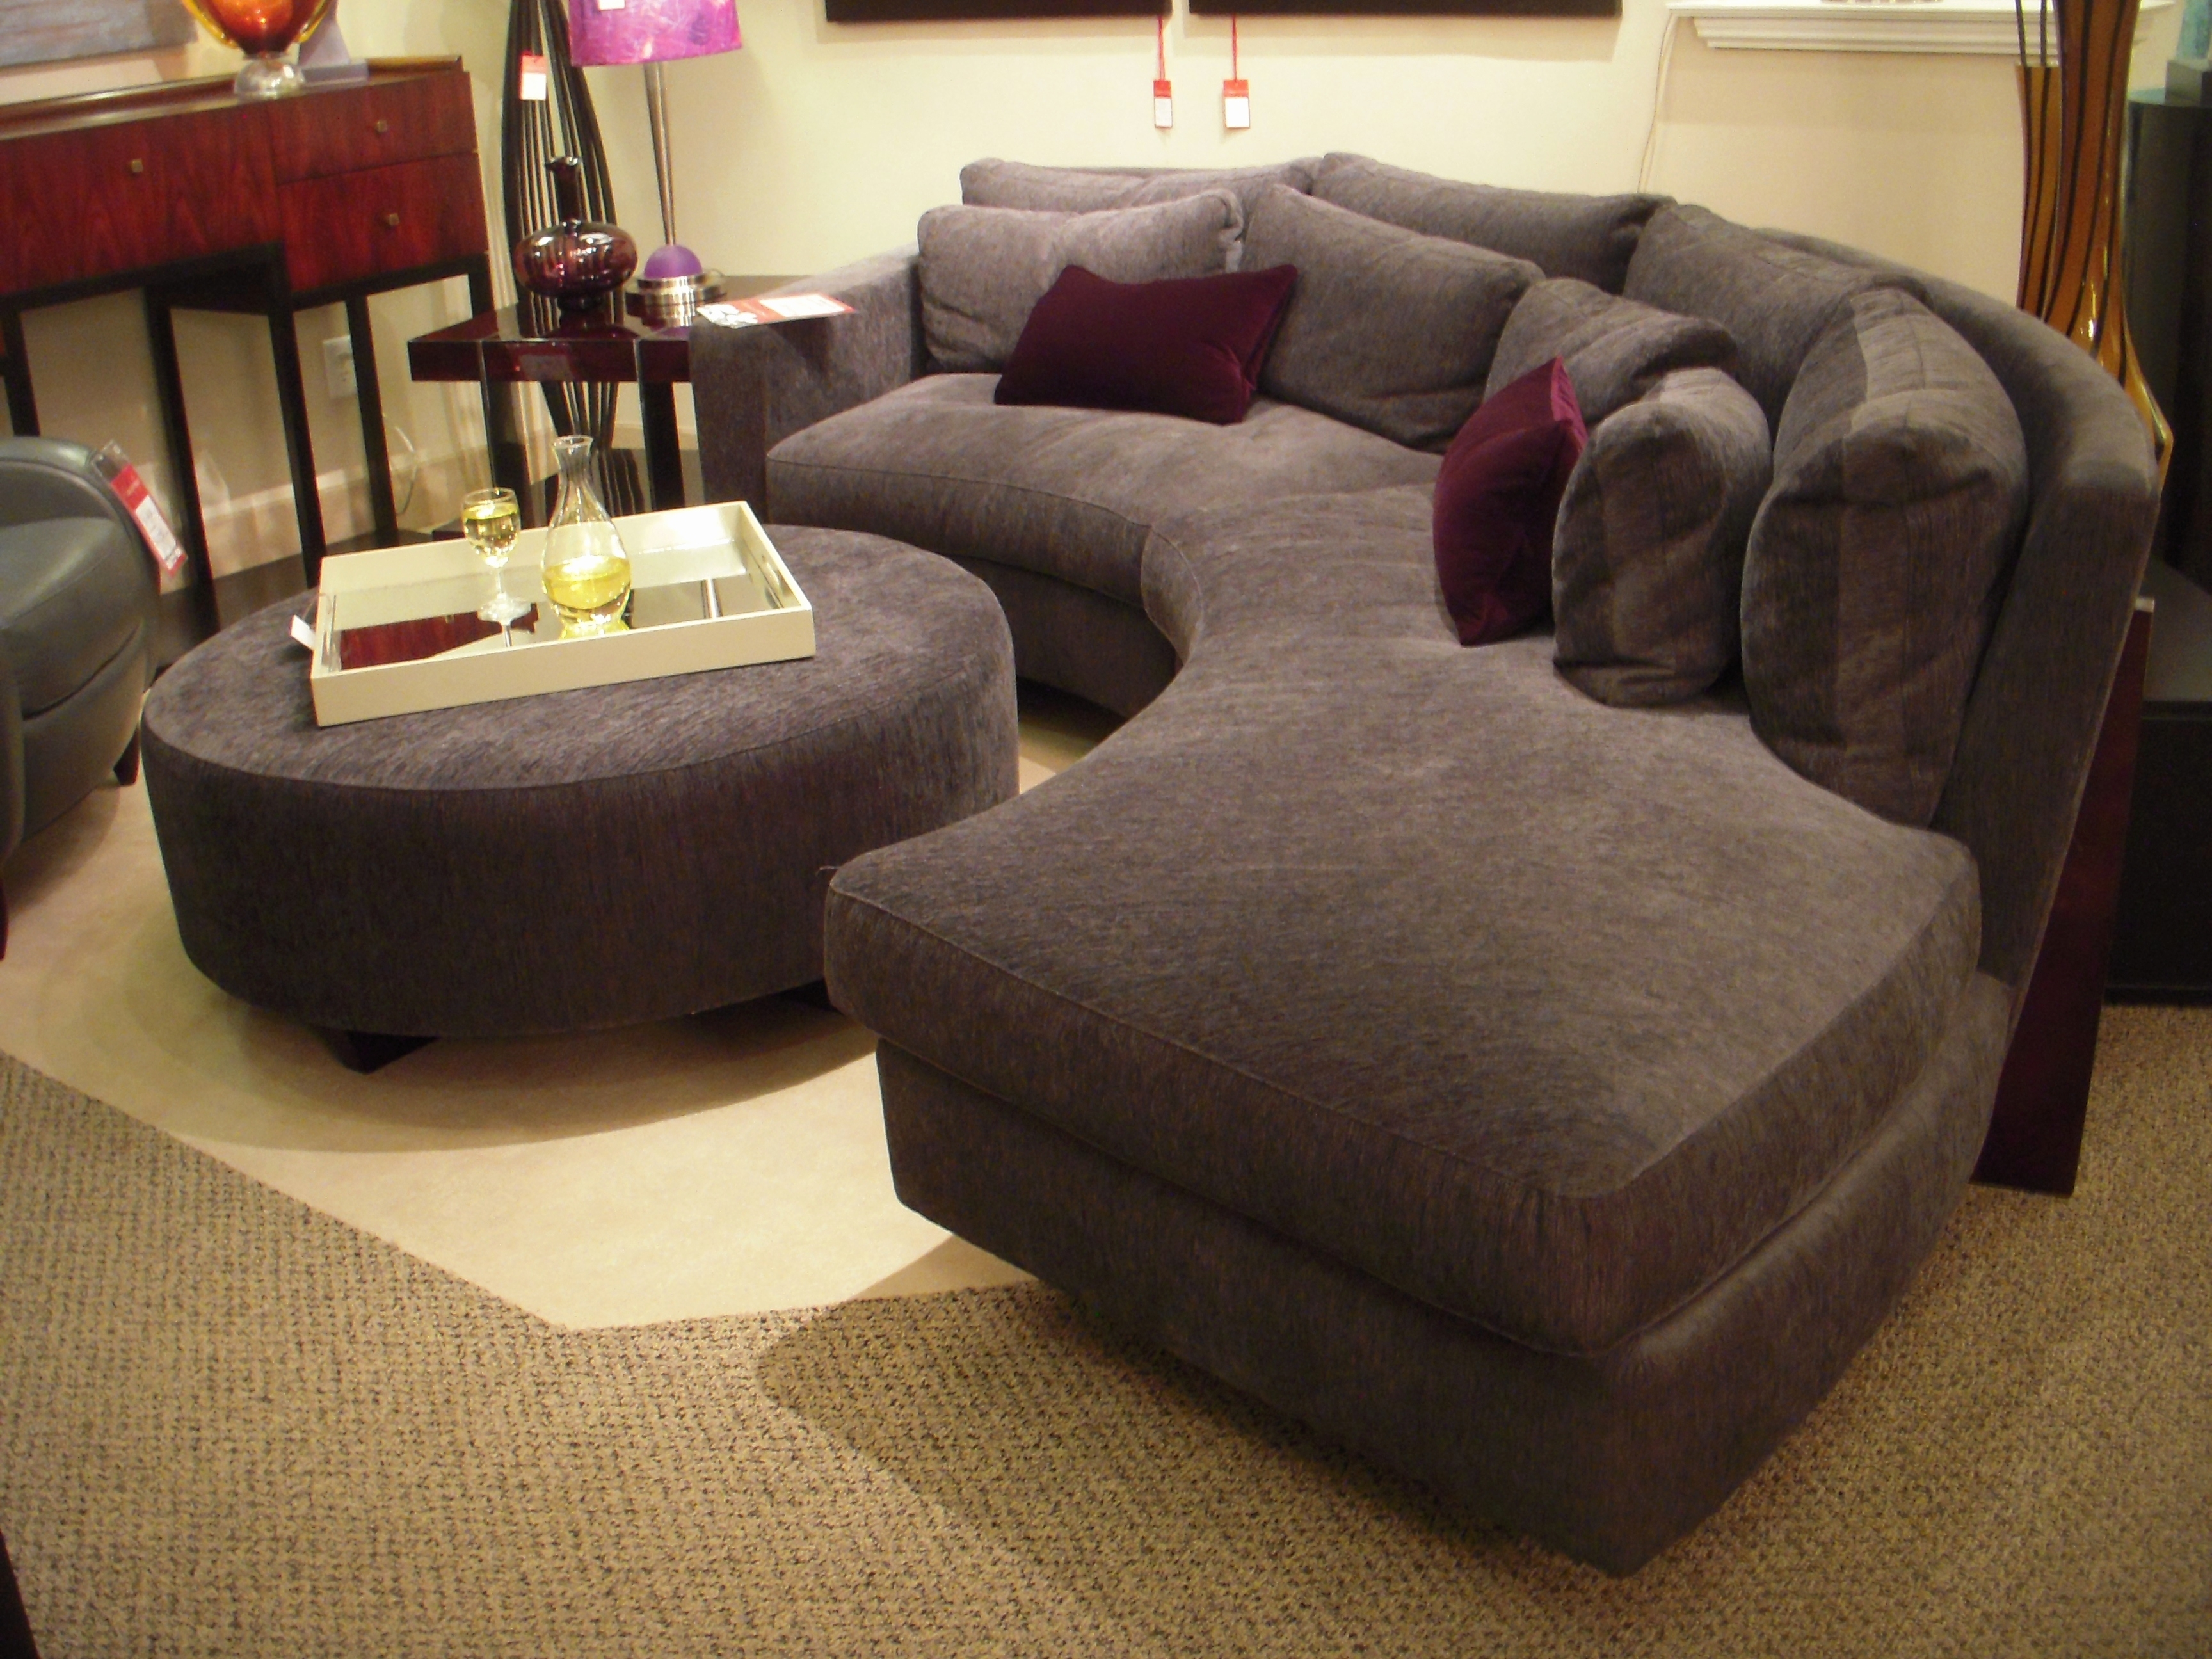 Inspirational U Shaped Modular Sectional Sofa 2018 – Couches Ideas Intended For Deep U Shaped Sectionals (Image 8 of 10)